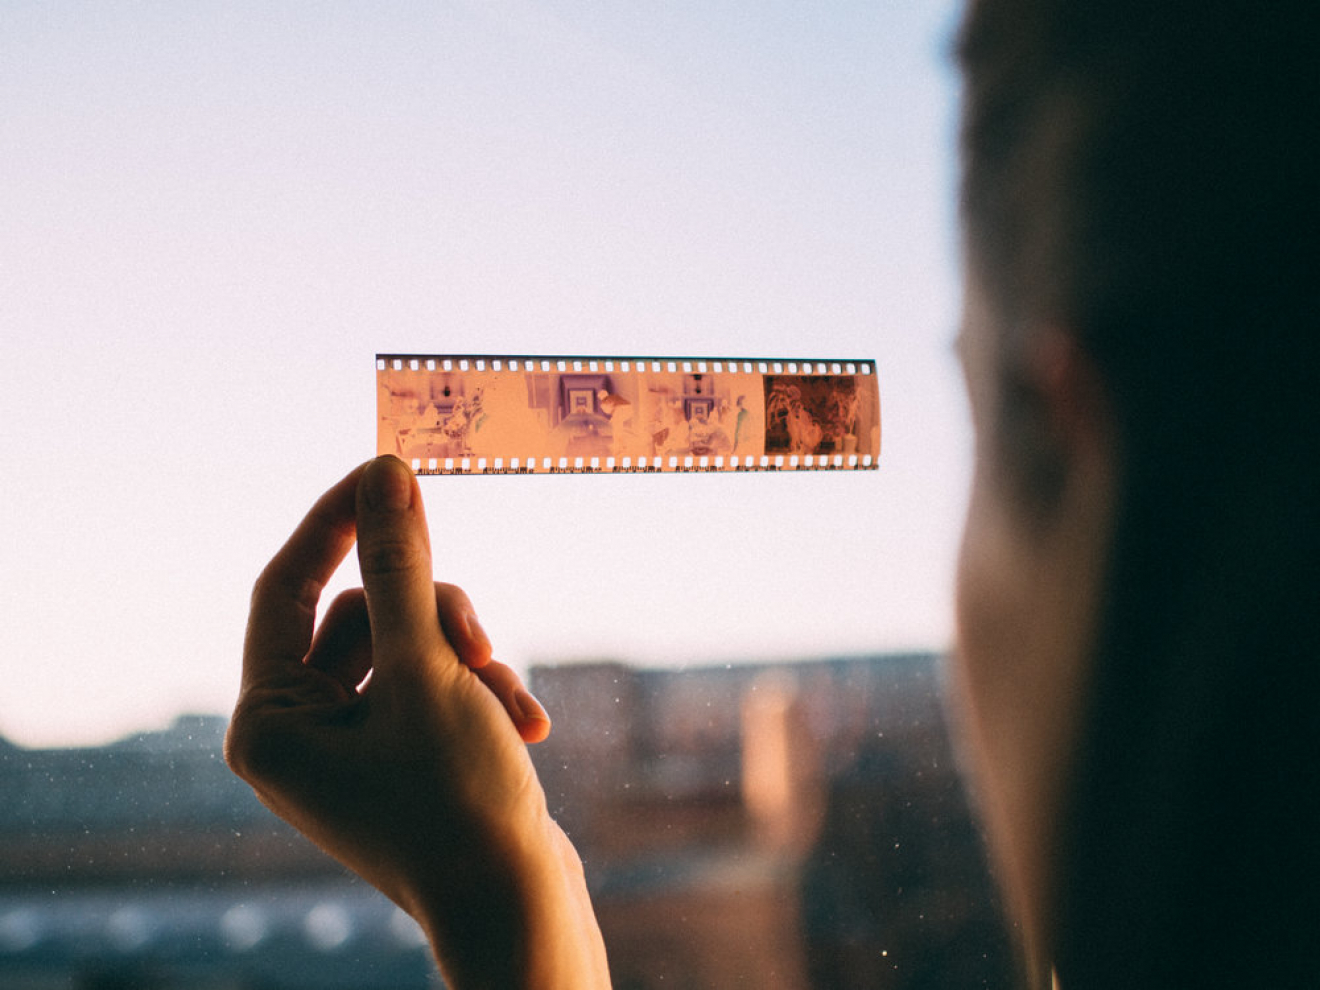 analog film strip